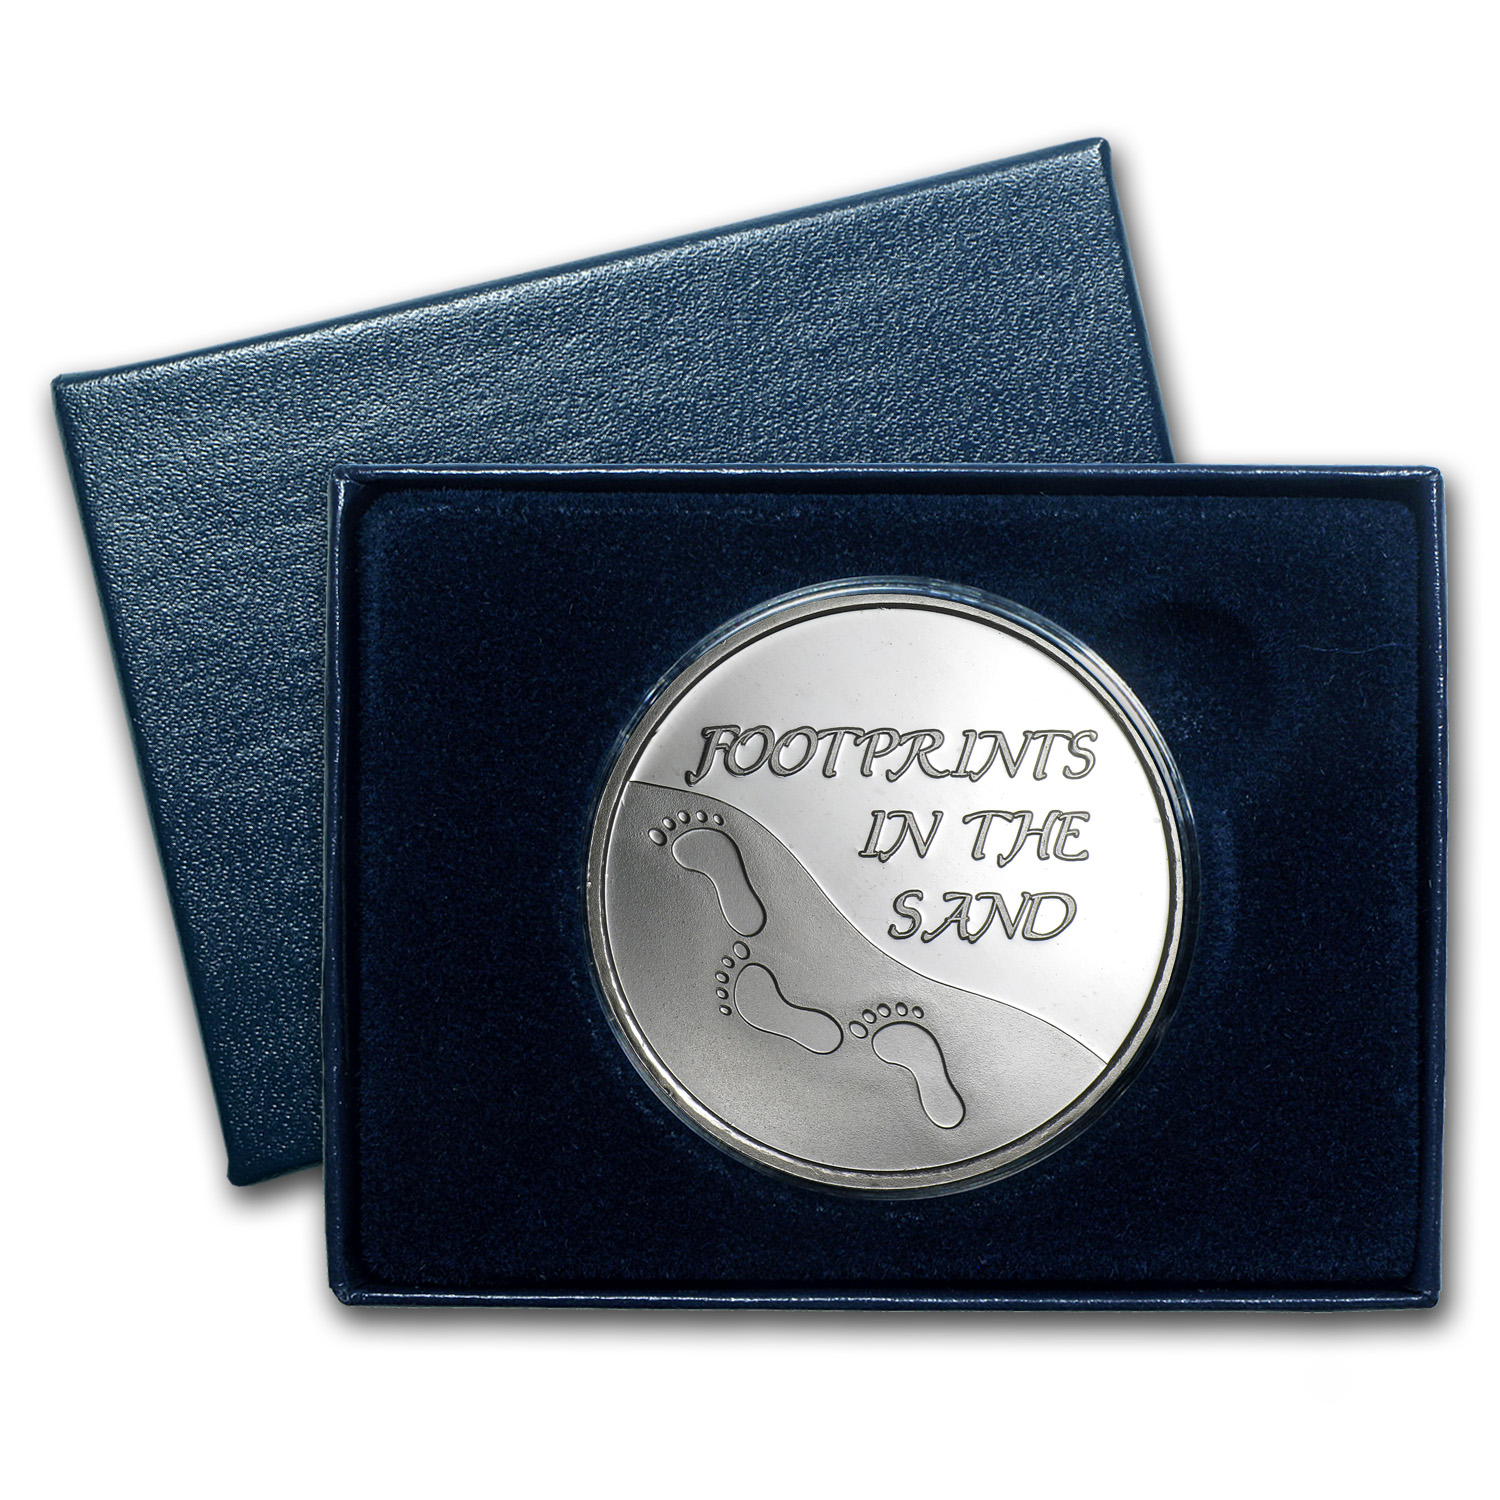 1 oz Silver Rnd - Footprints in the Sand (Plain, w/Box & Capsule)